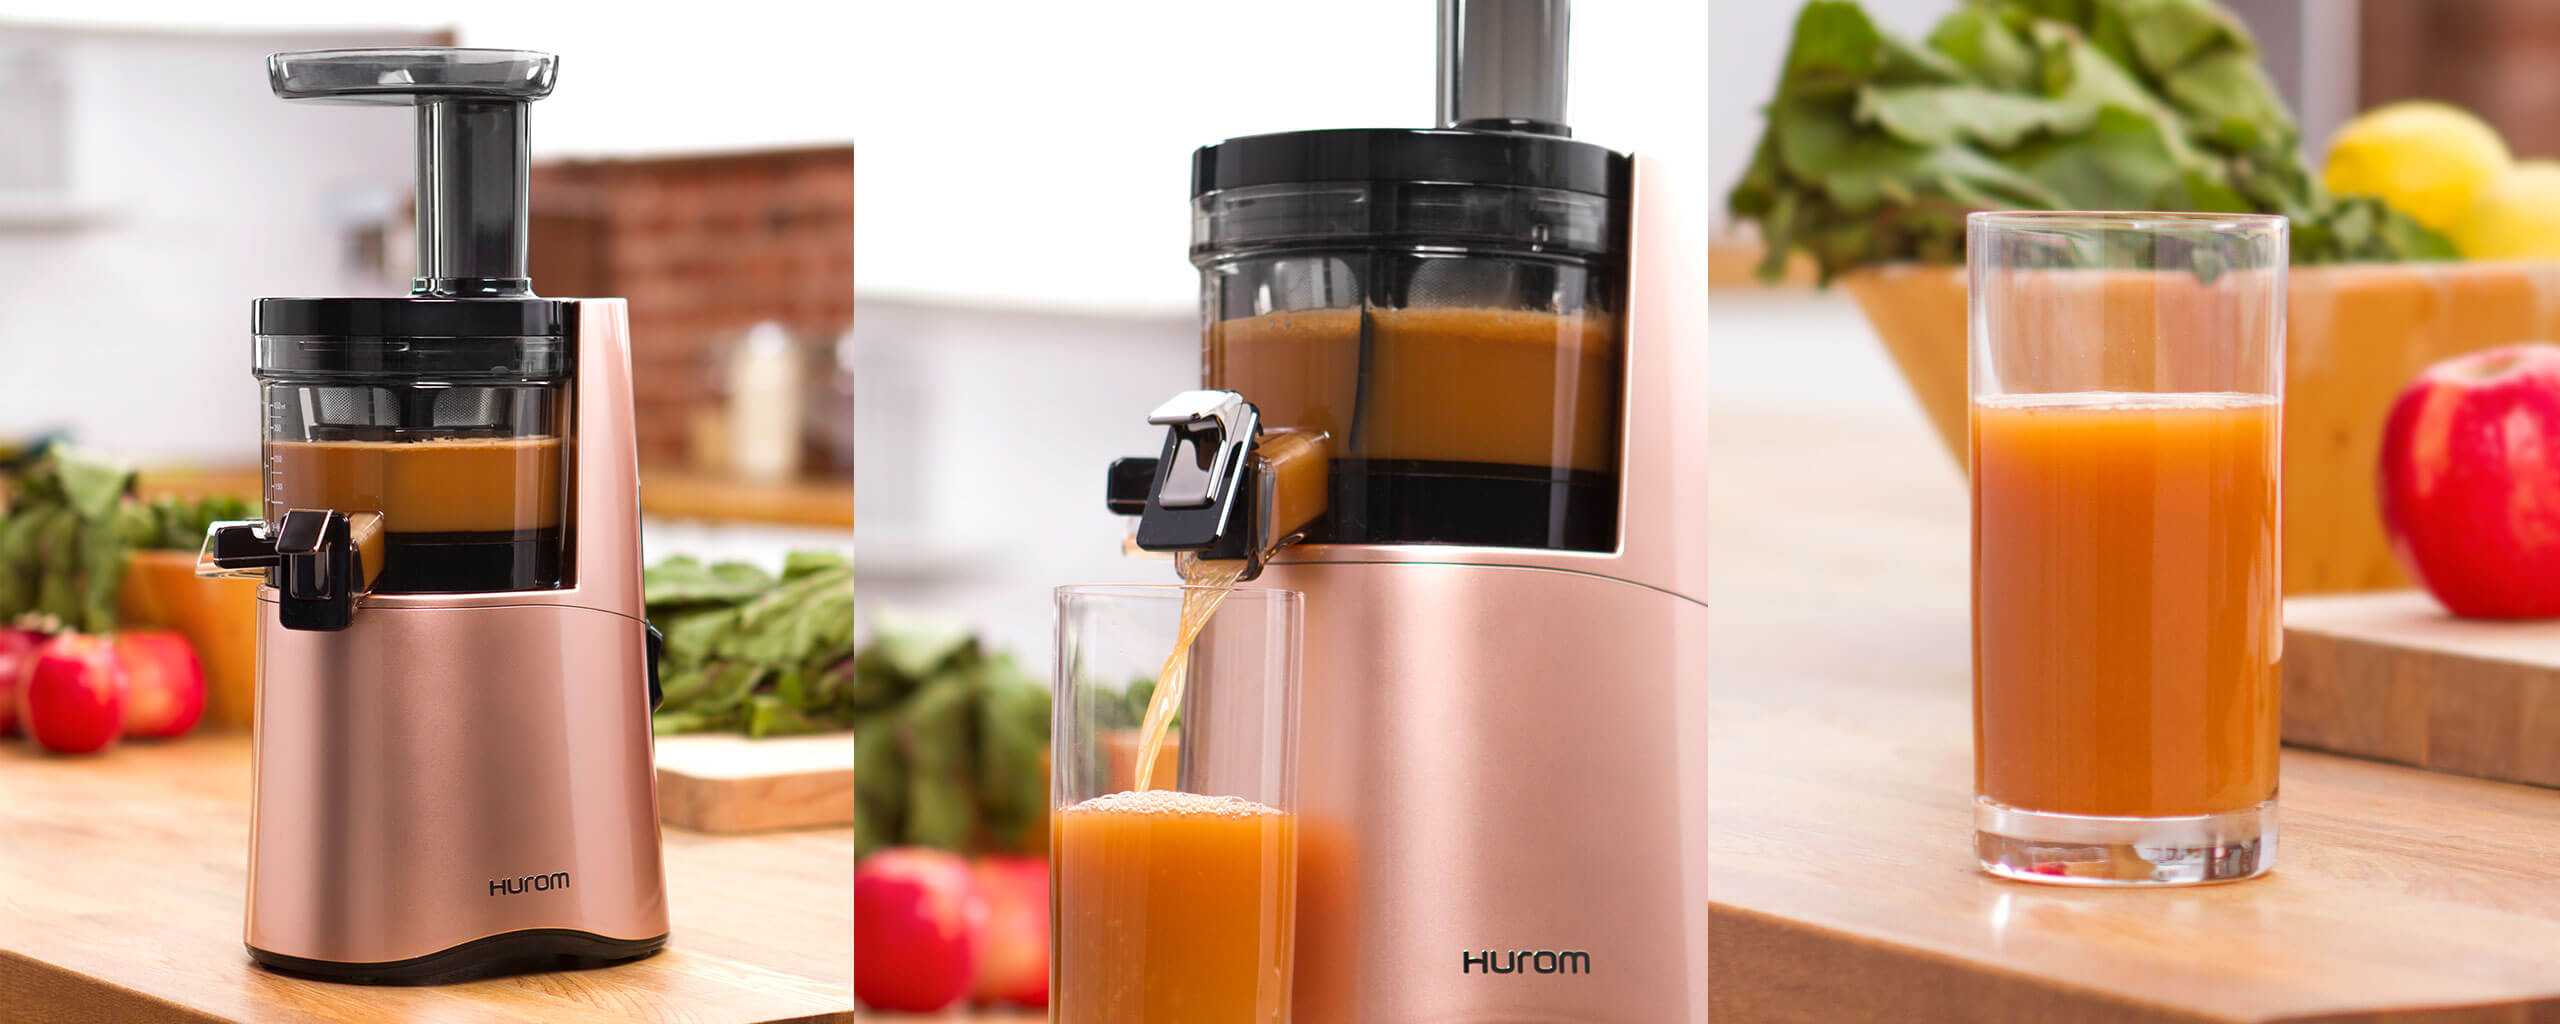 H aa slow juicer hurom hurom h aa slow juicer ccuart Gallery